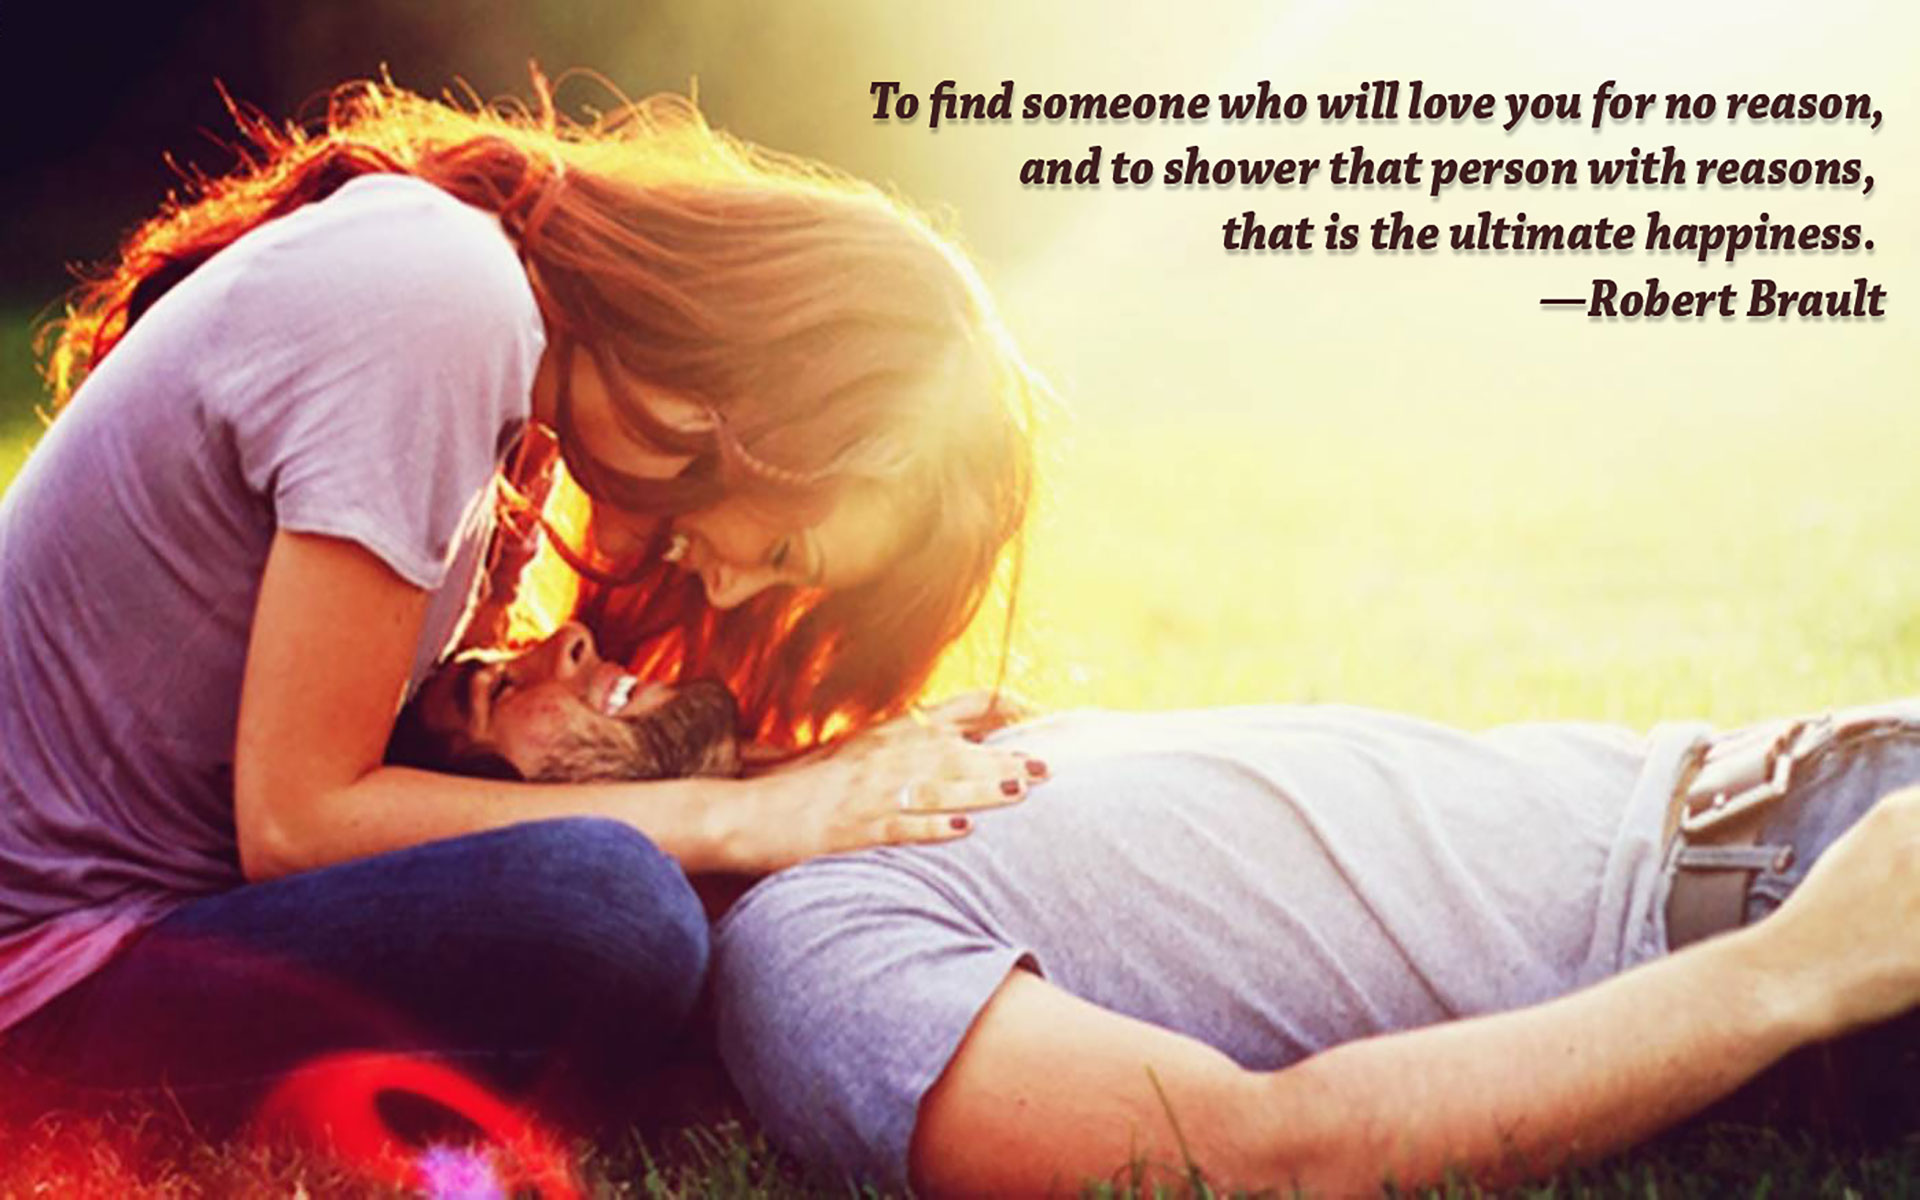 Download Love Quotes Wallpaper For Him in high-quality for your ...